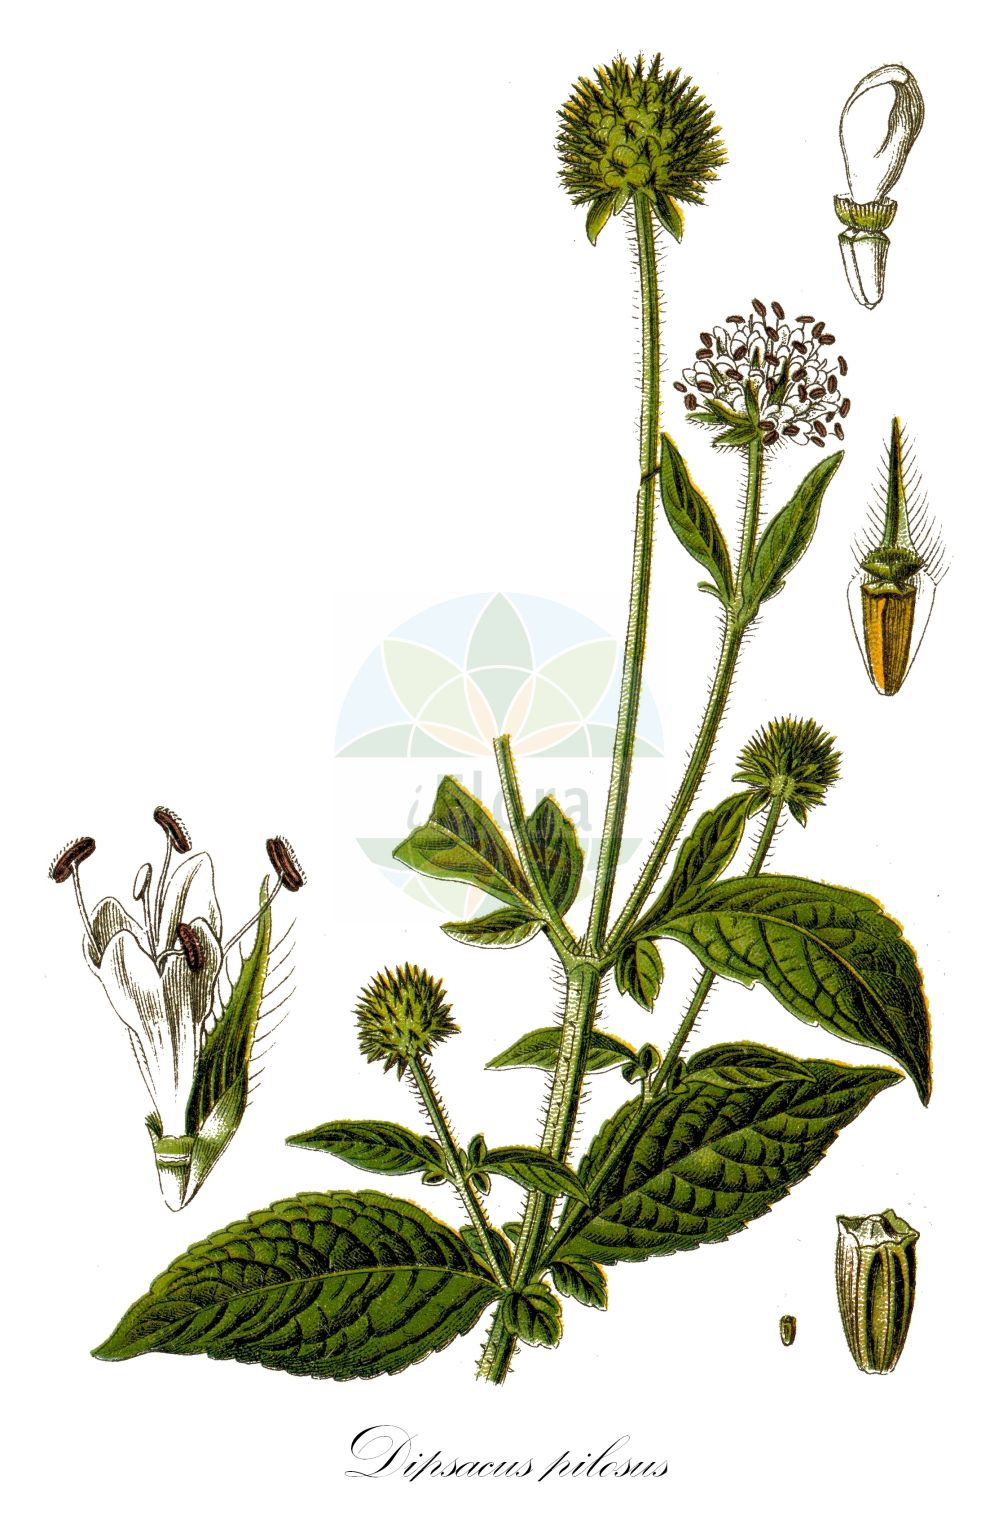 Historische Abbildung von Dipsacus pilosus (Behaarte Karde - Small Teasel). Das Bild zeigt Blatt, Bluete, Frucht und Same. ---- Historical Drawing of Dipsacus pilosus (Behaarte Karde - Small Teasel).The image is showing leaf, flower, fruit and seed.(Dipsacus pilosus,Behaarte Karde,Small Teasel,Cephalaria pilosa,Virga pilosa,Dipsacus,Karde,Teasel,Caprifoliaceae,Geissblattgewaechse,Honeysuckle family,Blatt,Bluete,Frucht,Same,leaf,flower,fruit,seed,Sturm (1796f))